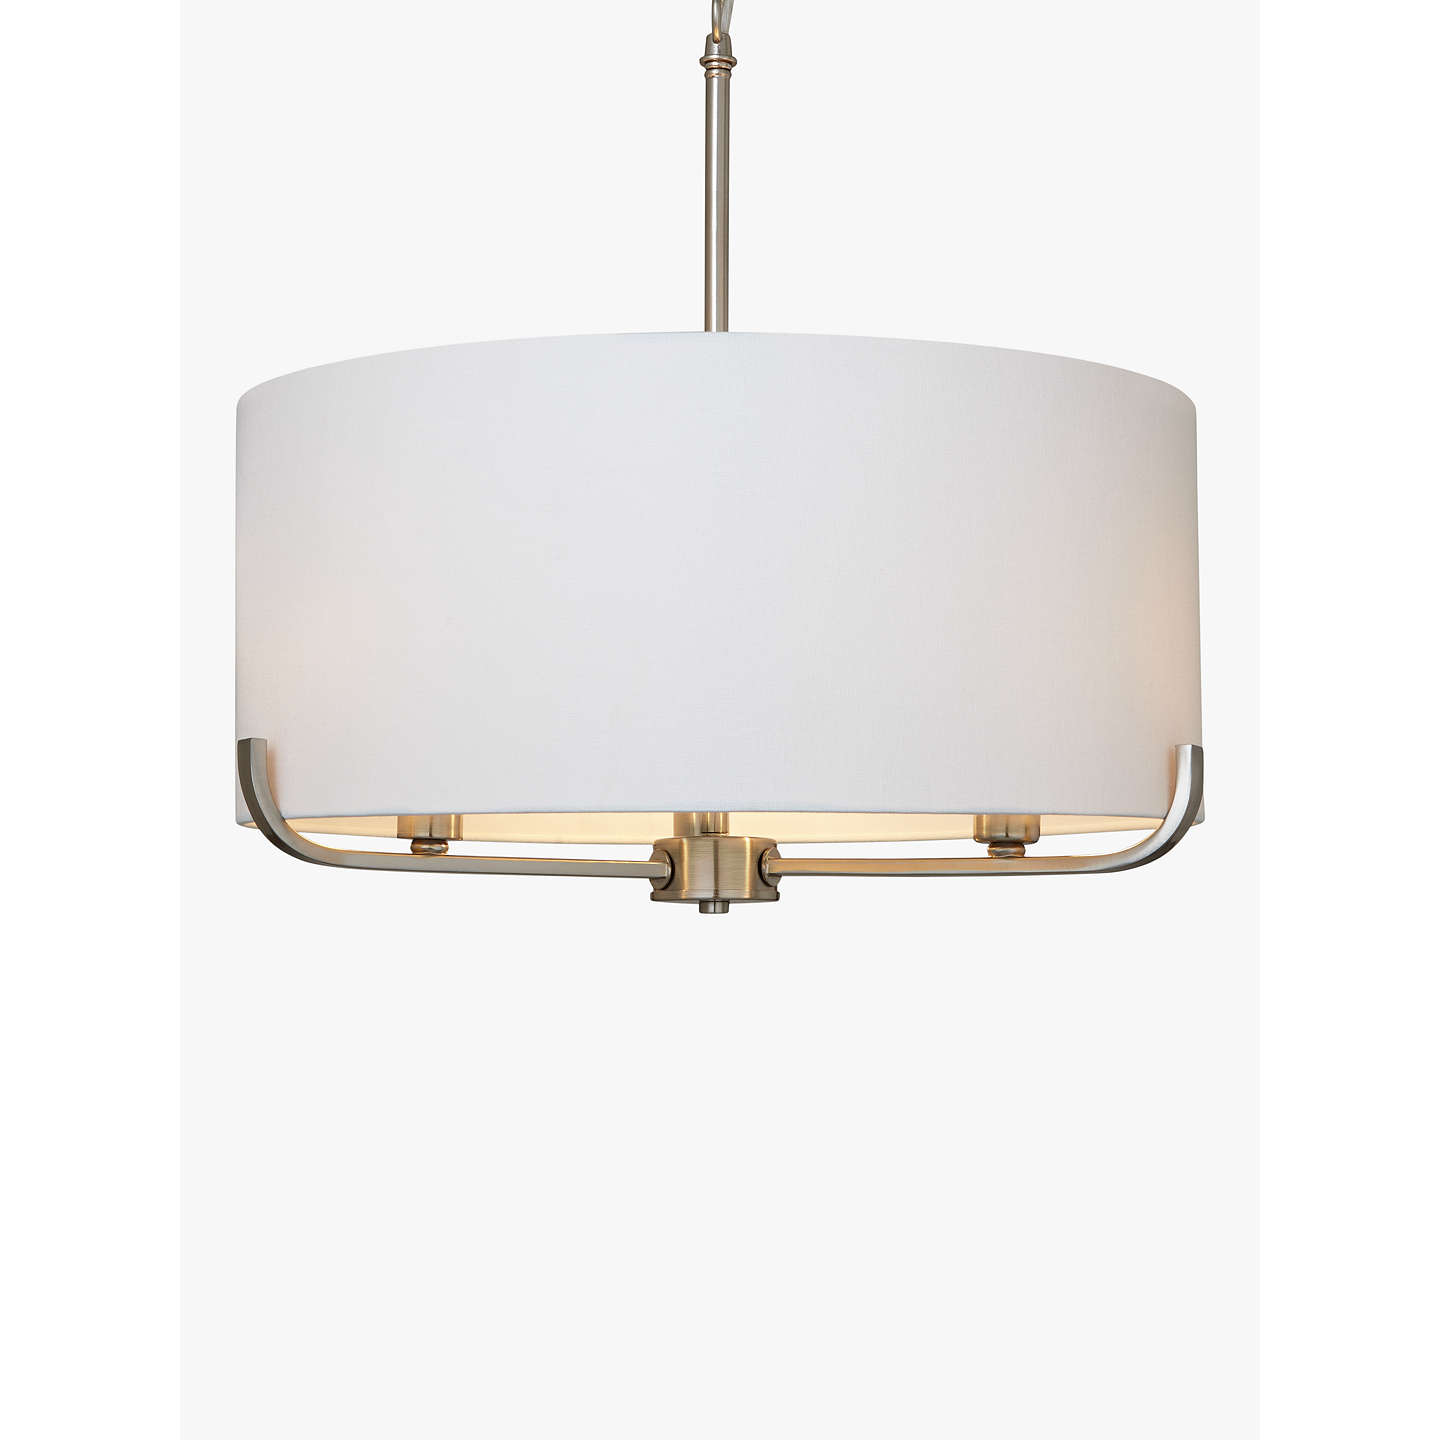 John lewis jamieson pendant satin nickel at john lewis buyjohn lewis jamieson pendant satin nickel online at johnlewis mozeypictures Image collections